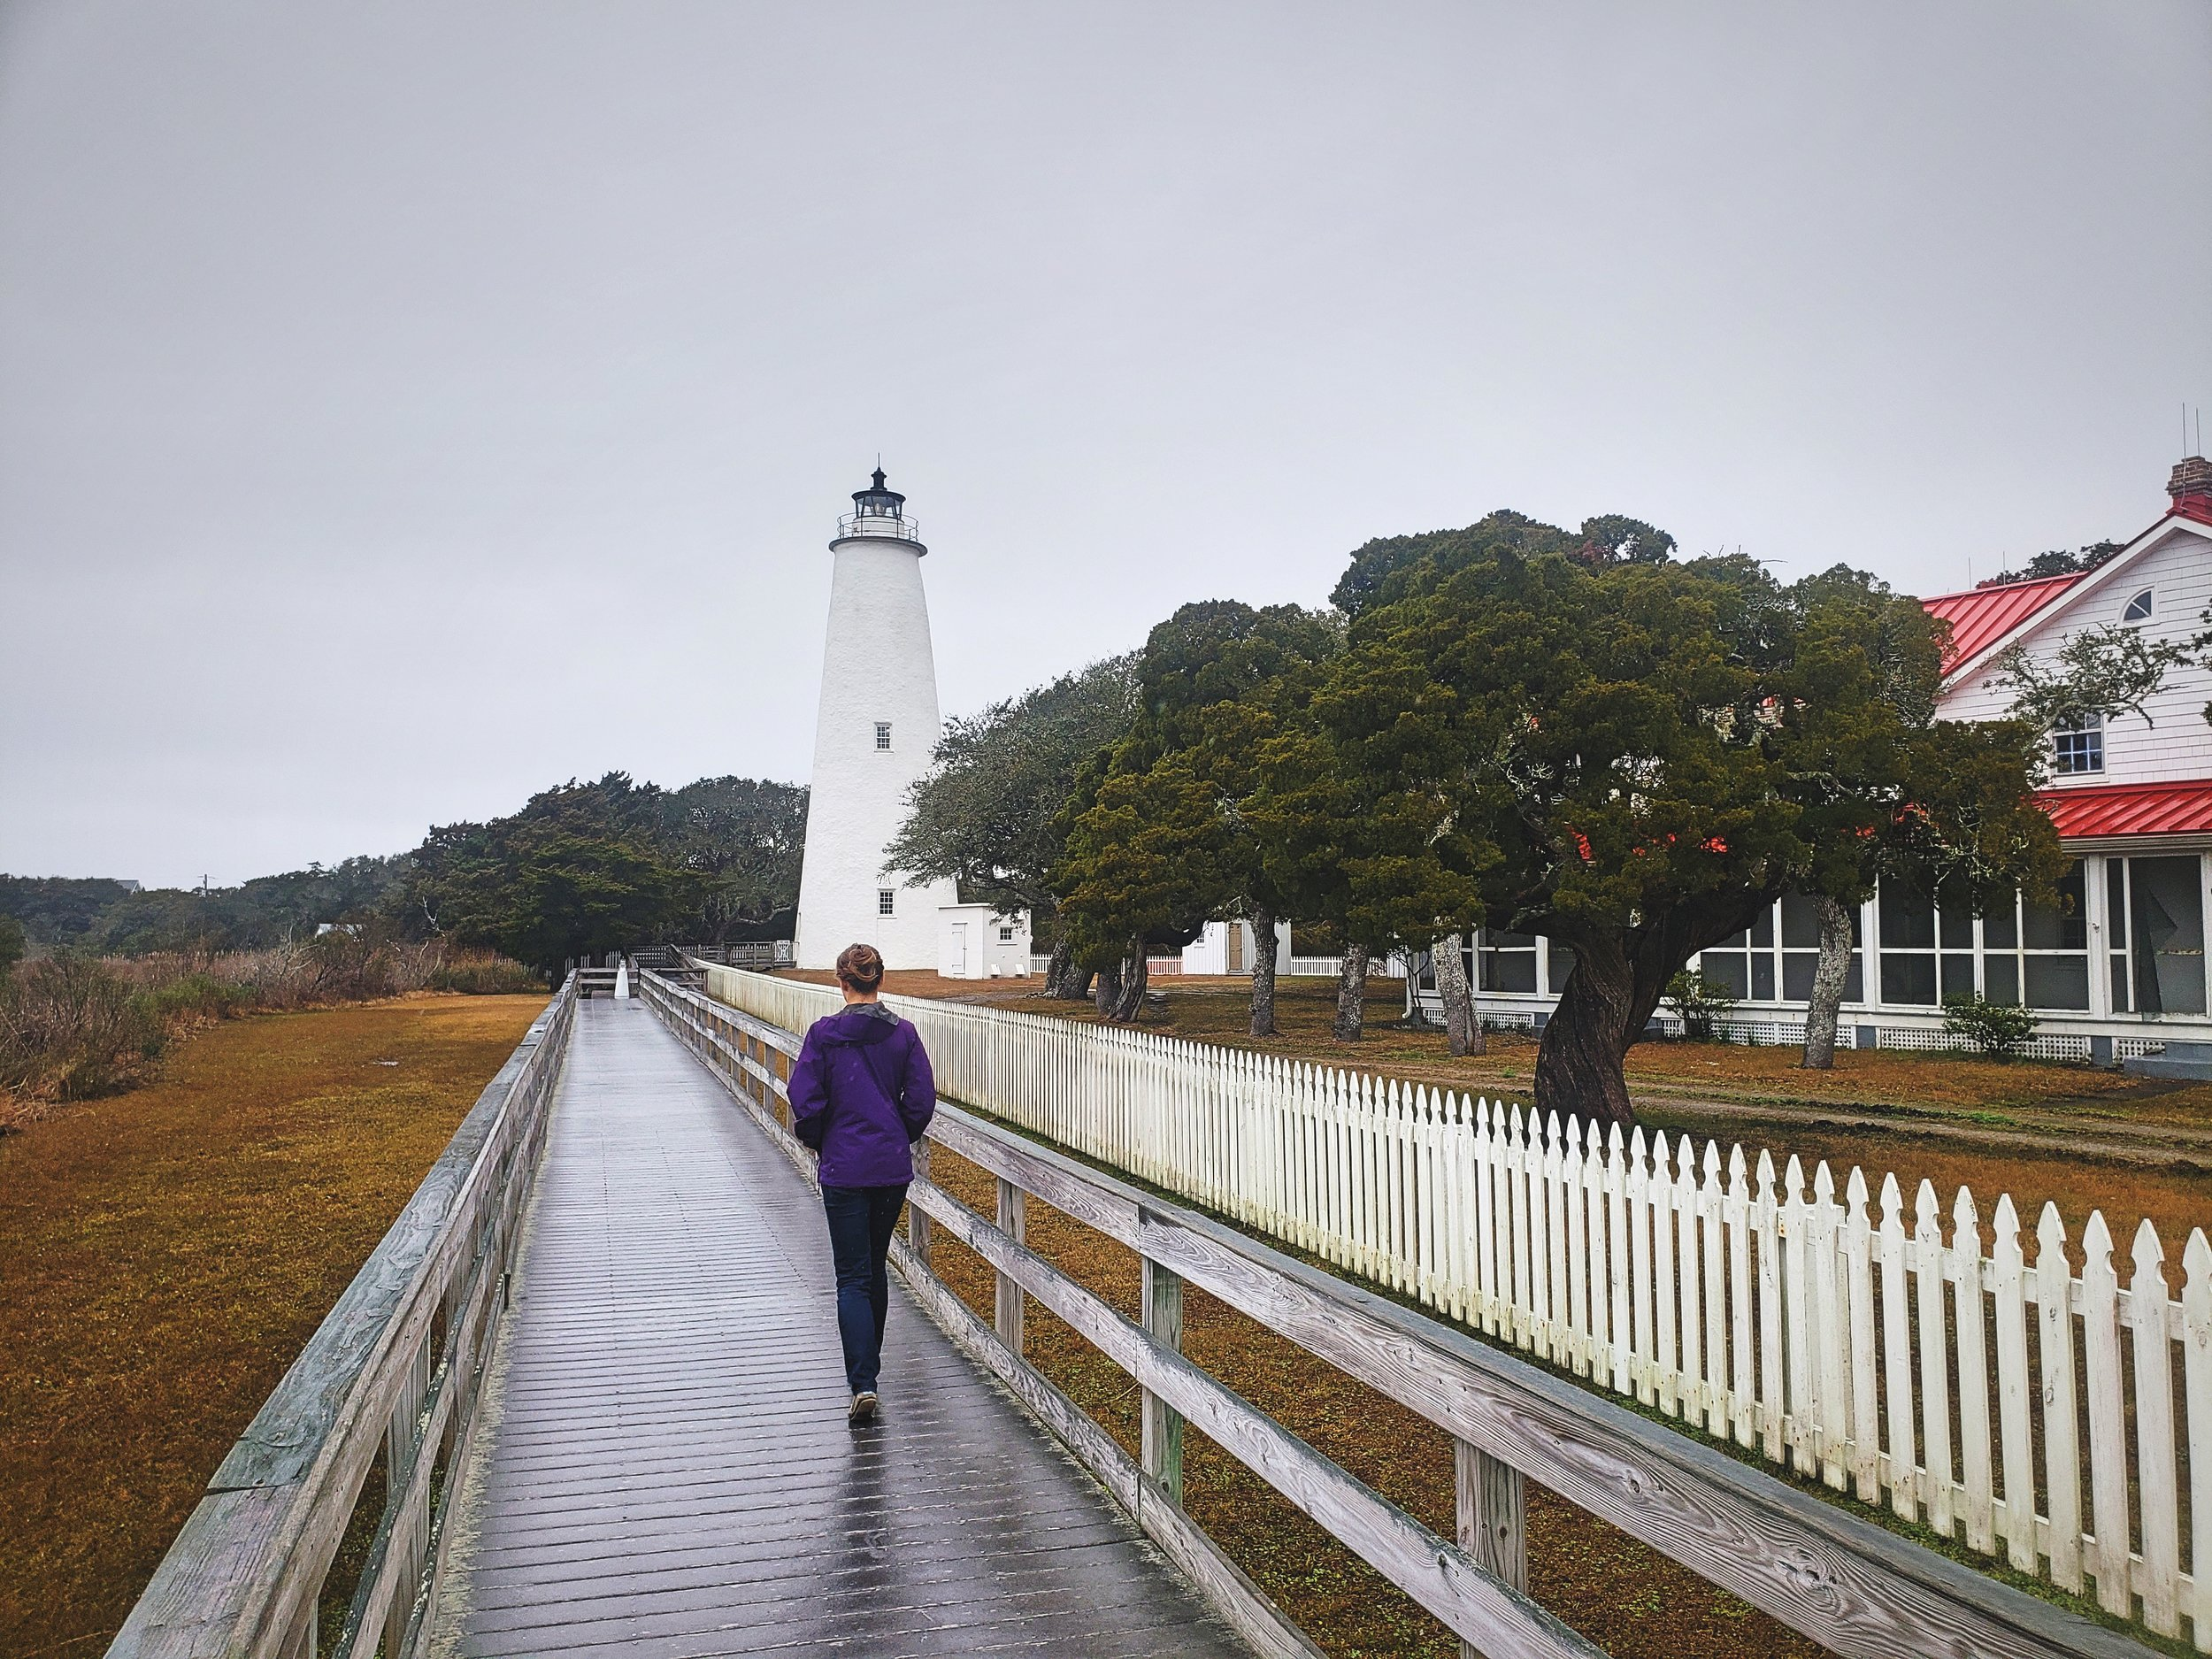 The Ocracoke Light is one of the oldest operational lights in North Carolina.